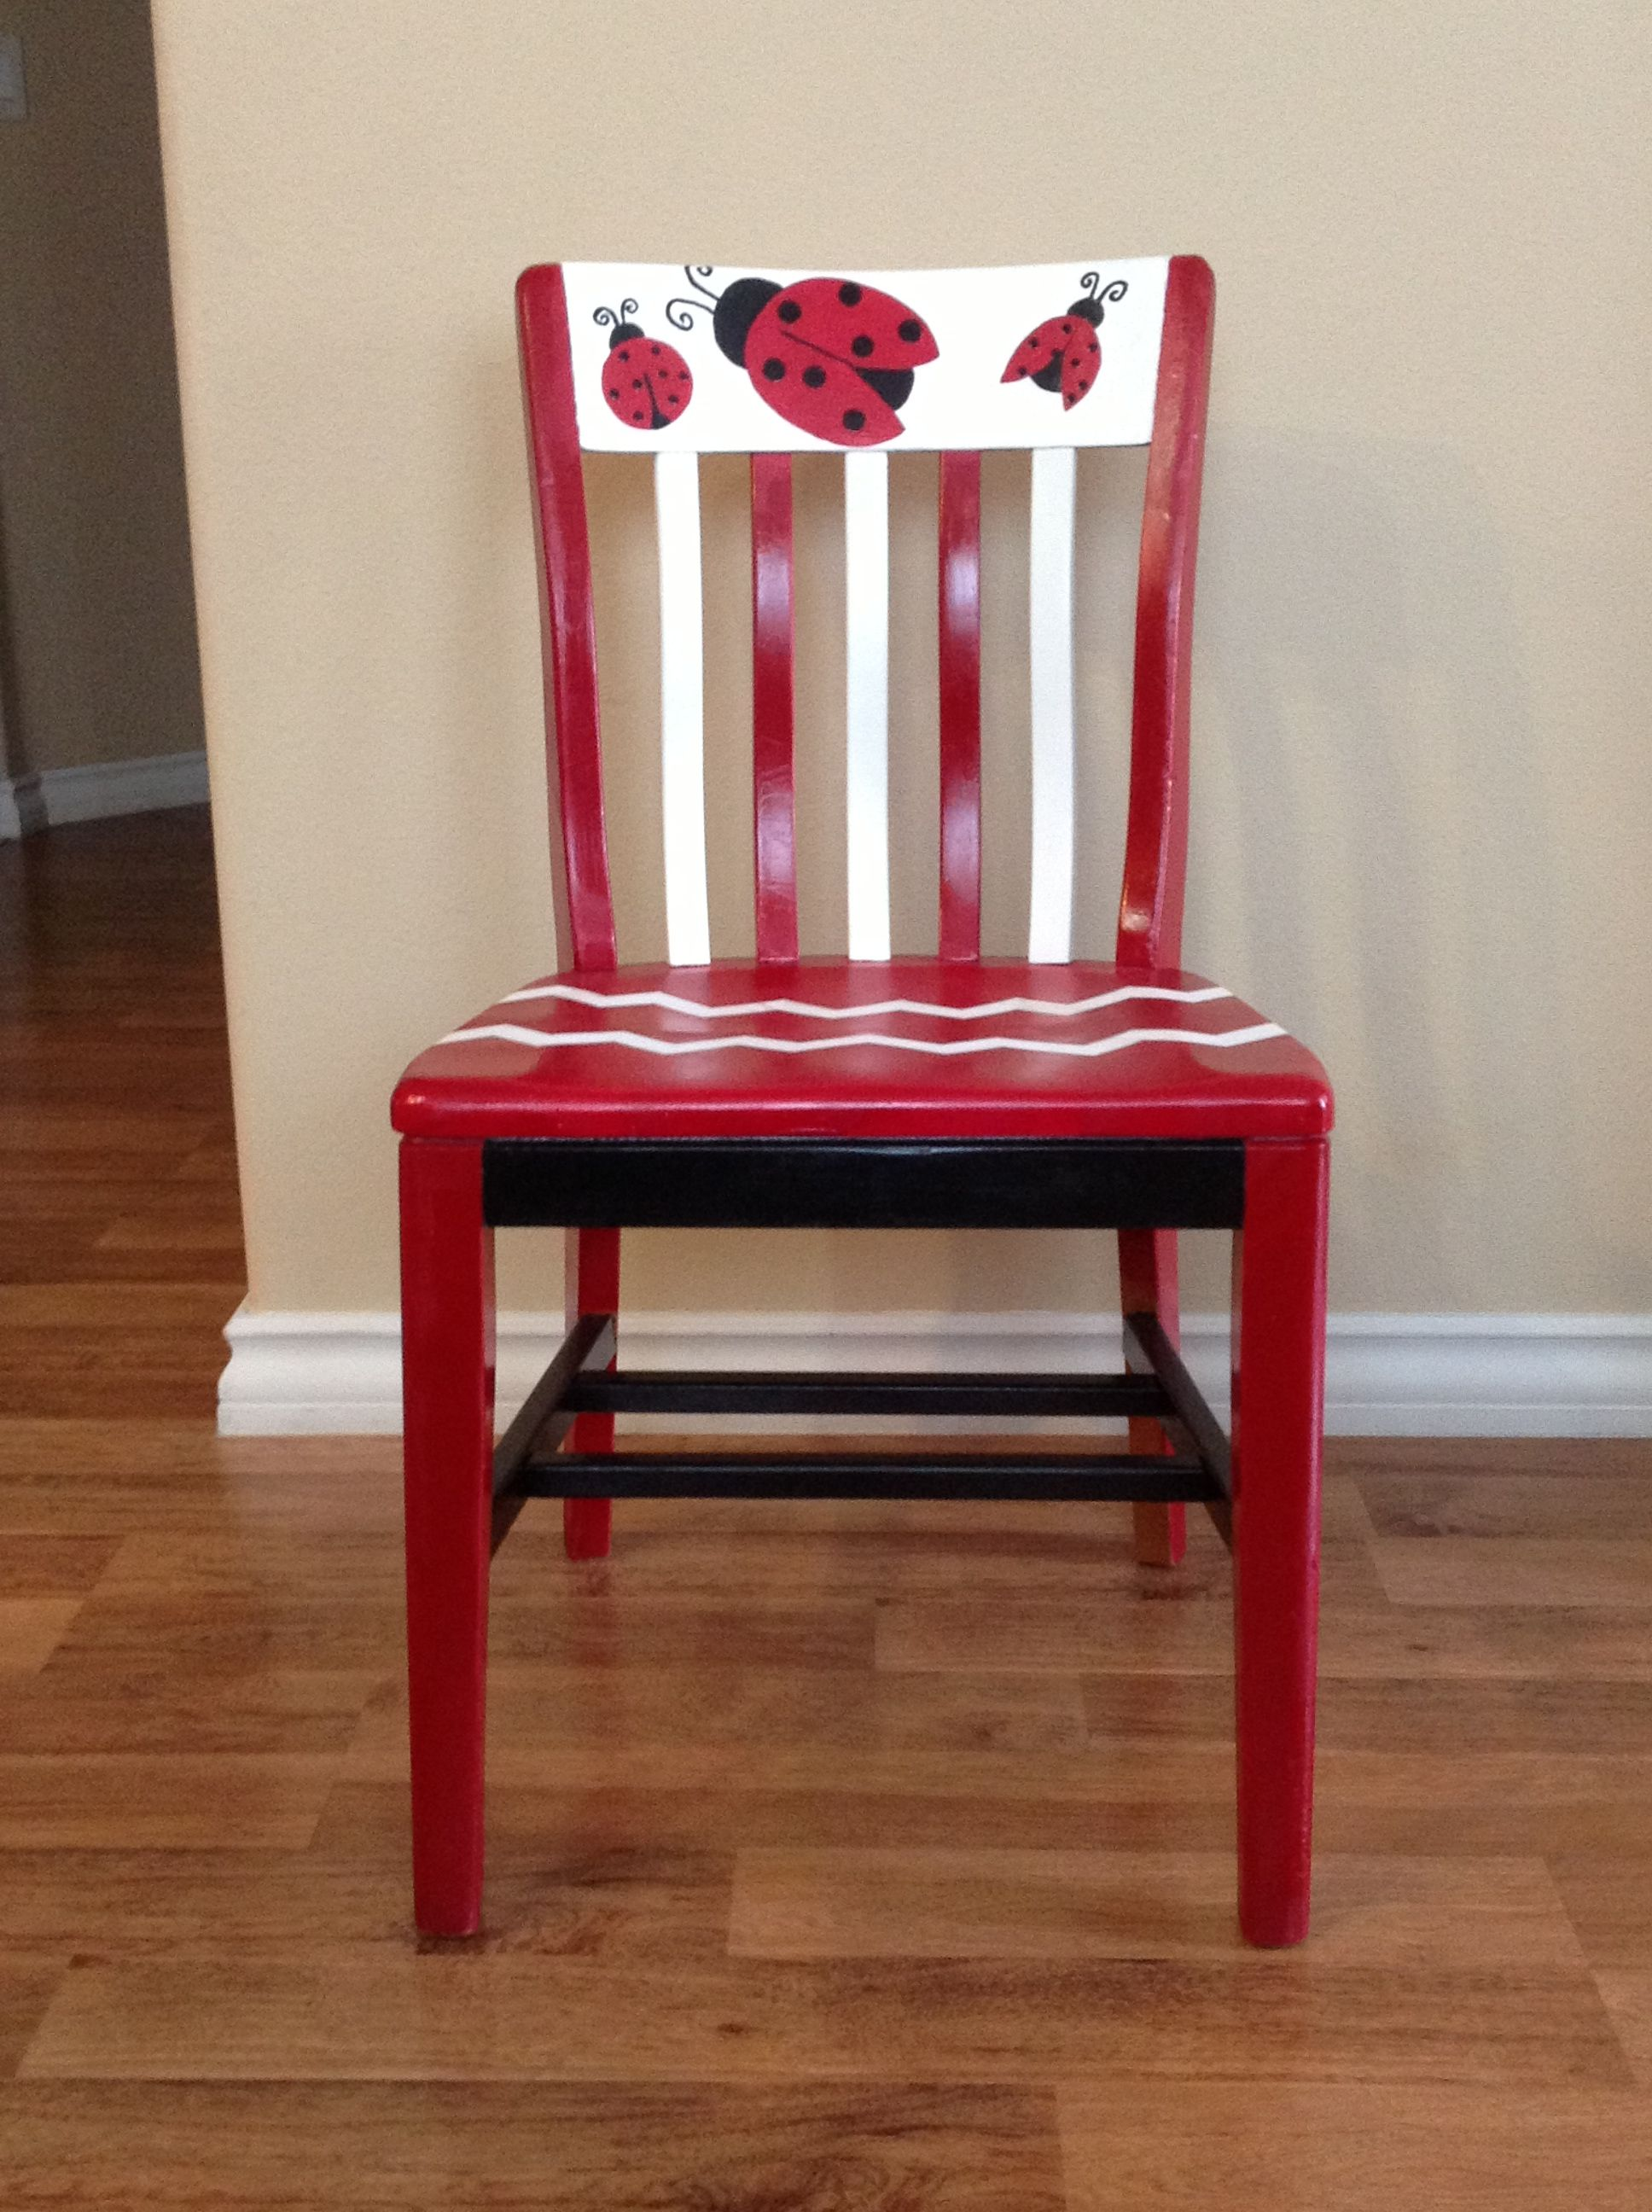 teacher rocking chair hanging chairs garden for my ladybug themed classroom things i